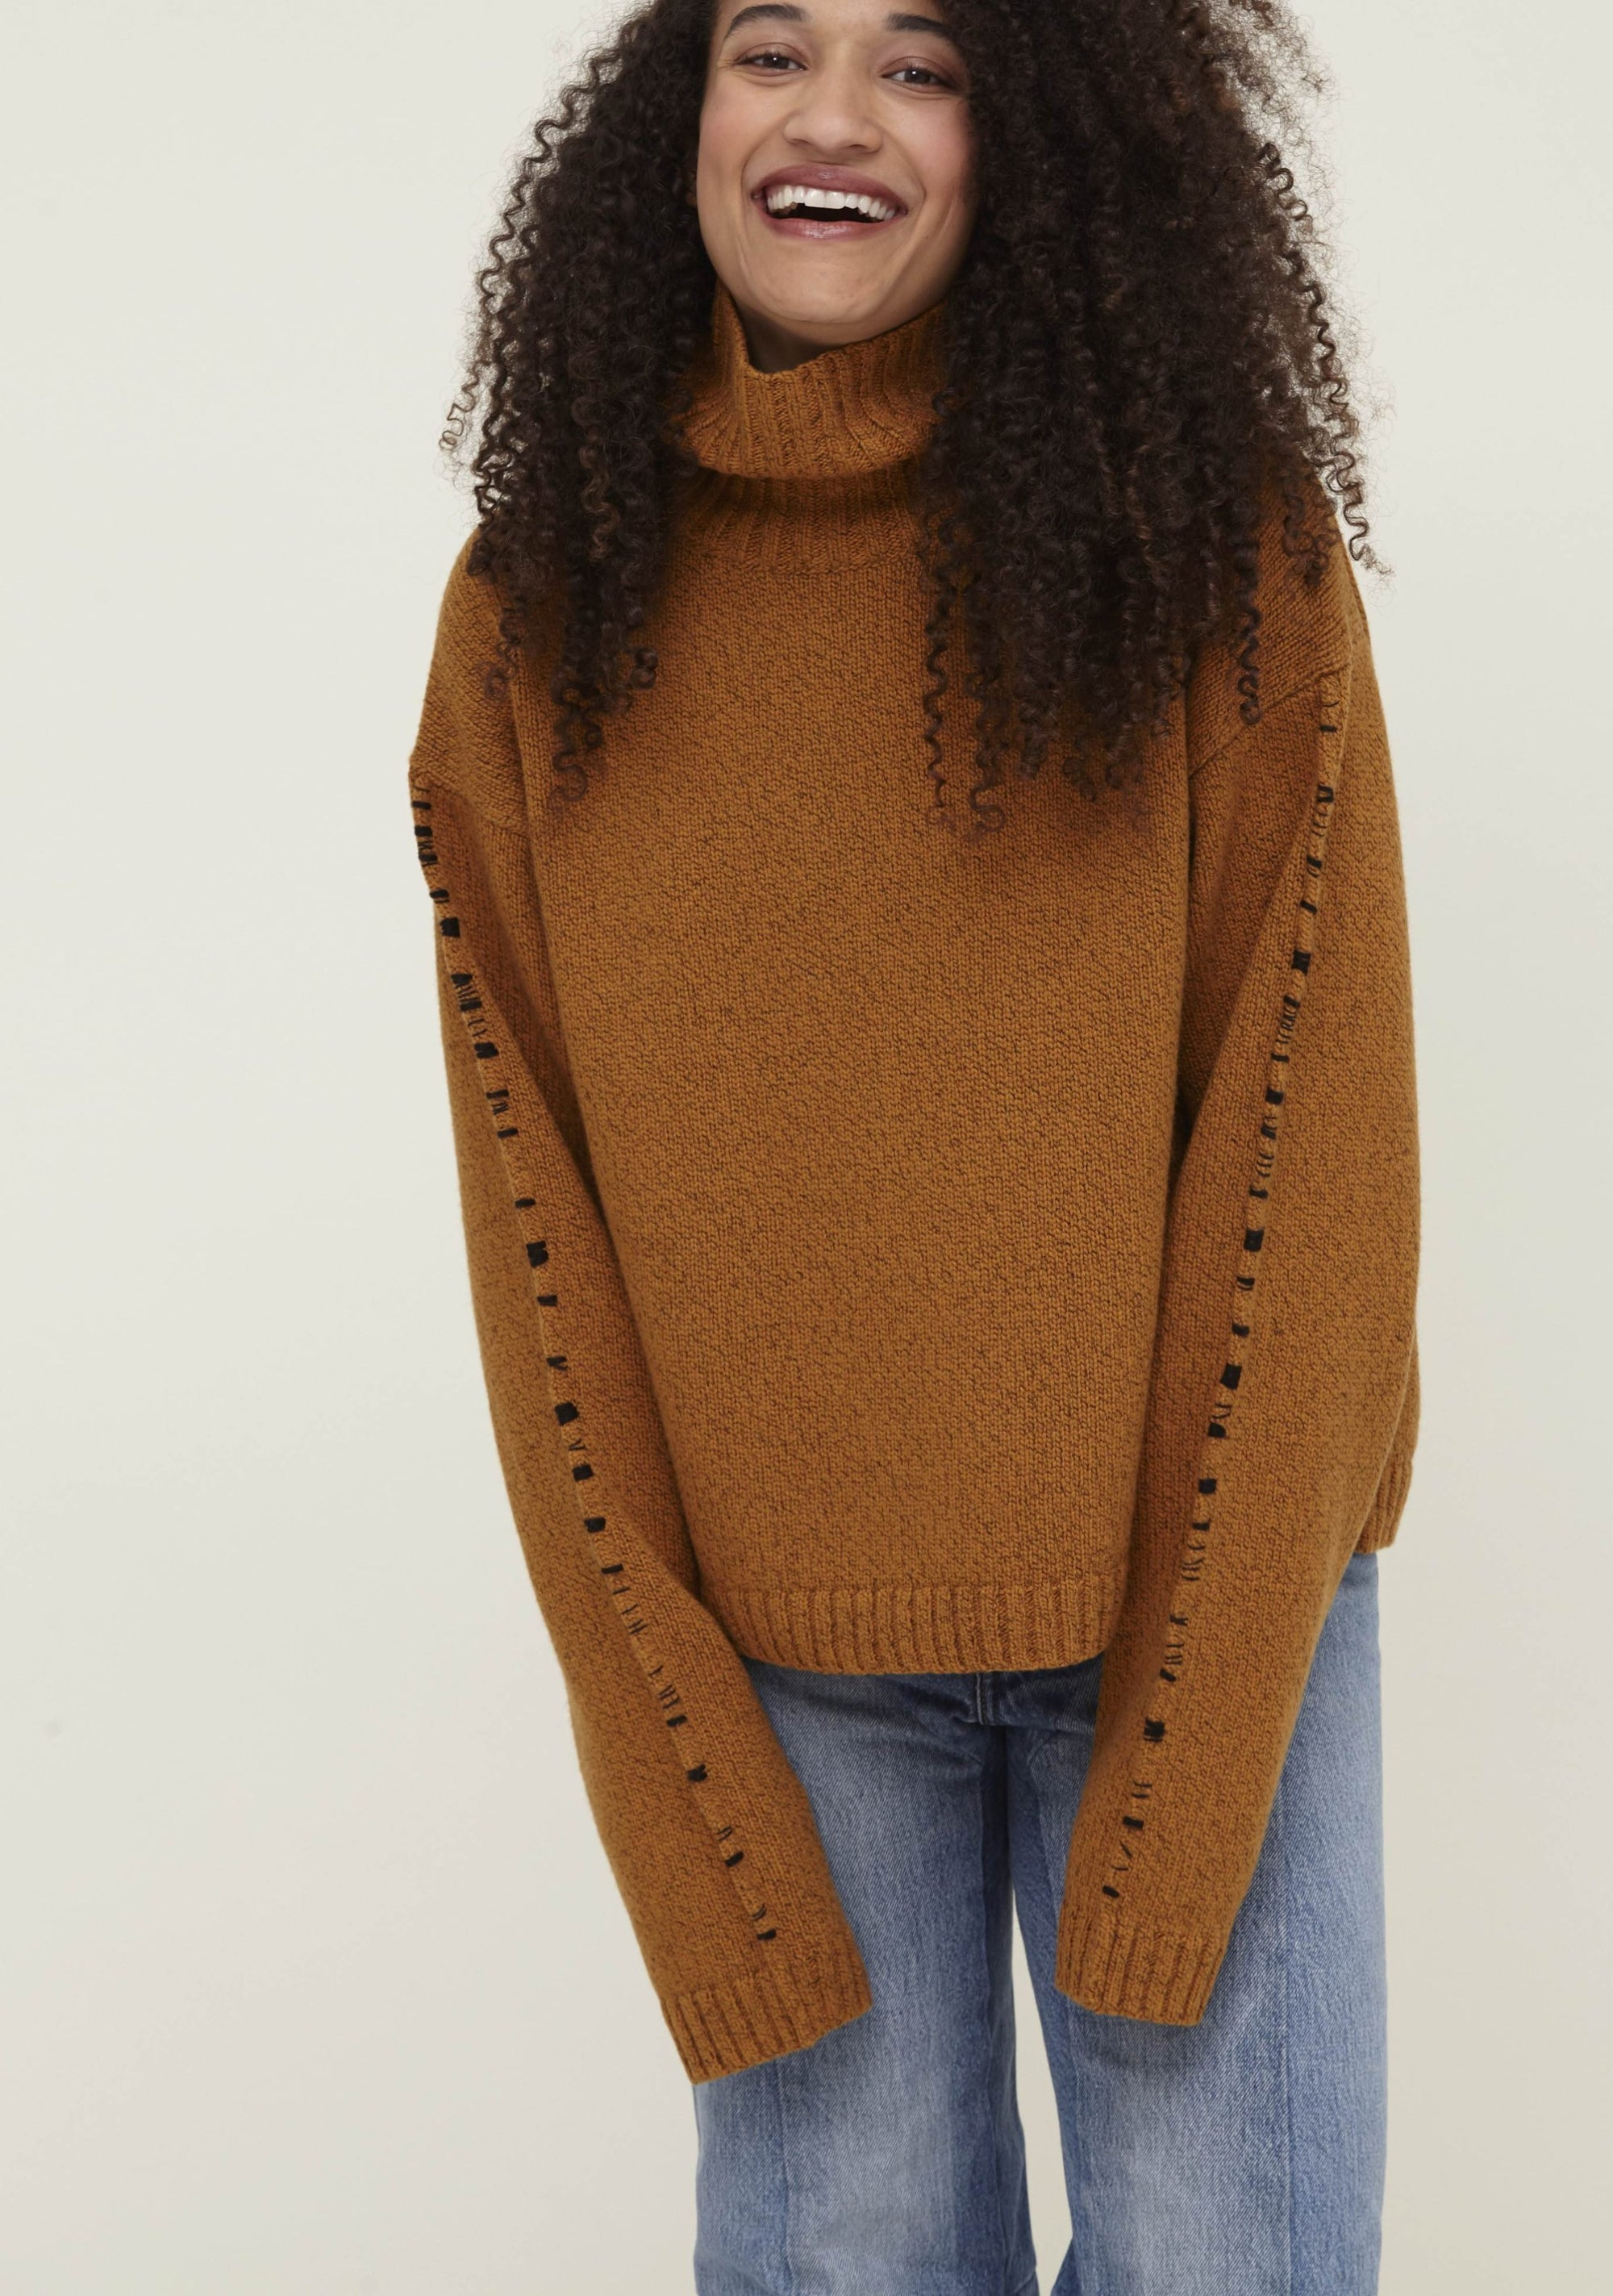 Orange Wool Turtleneck Sweater - Corenna